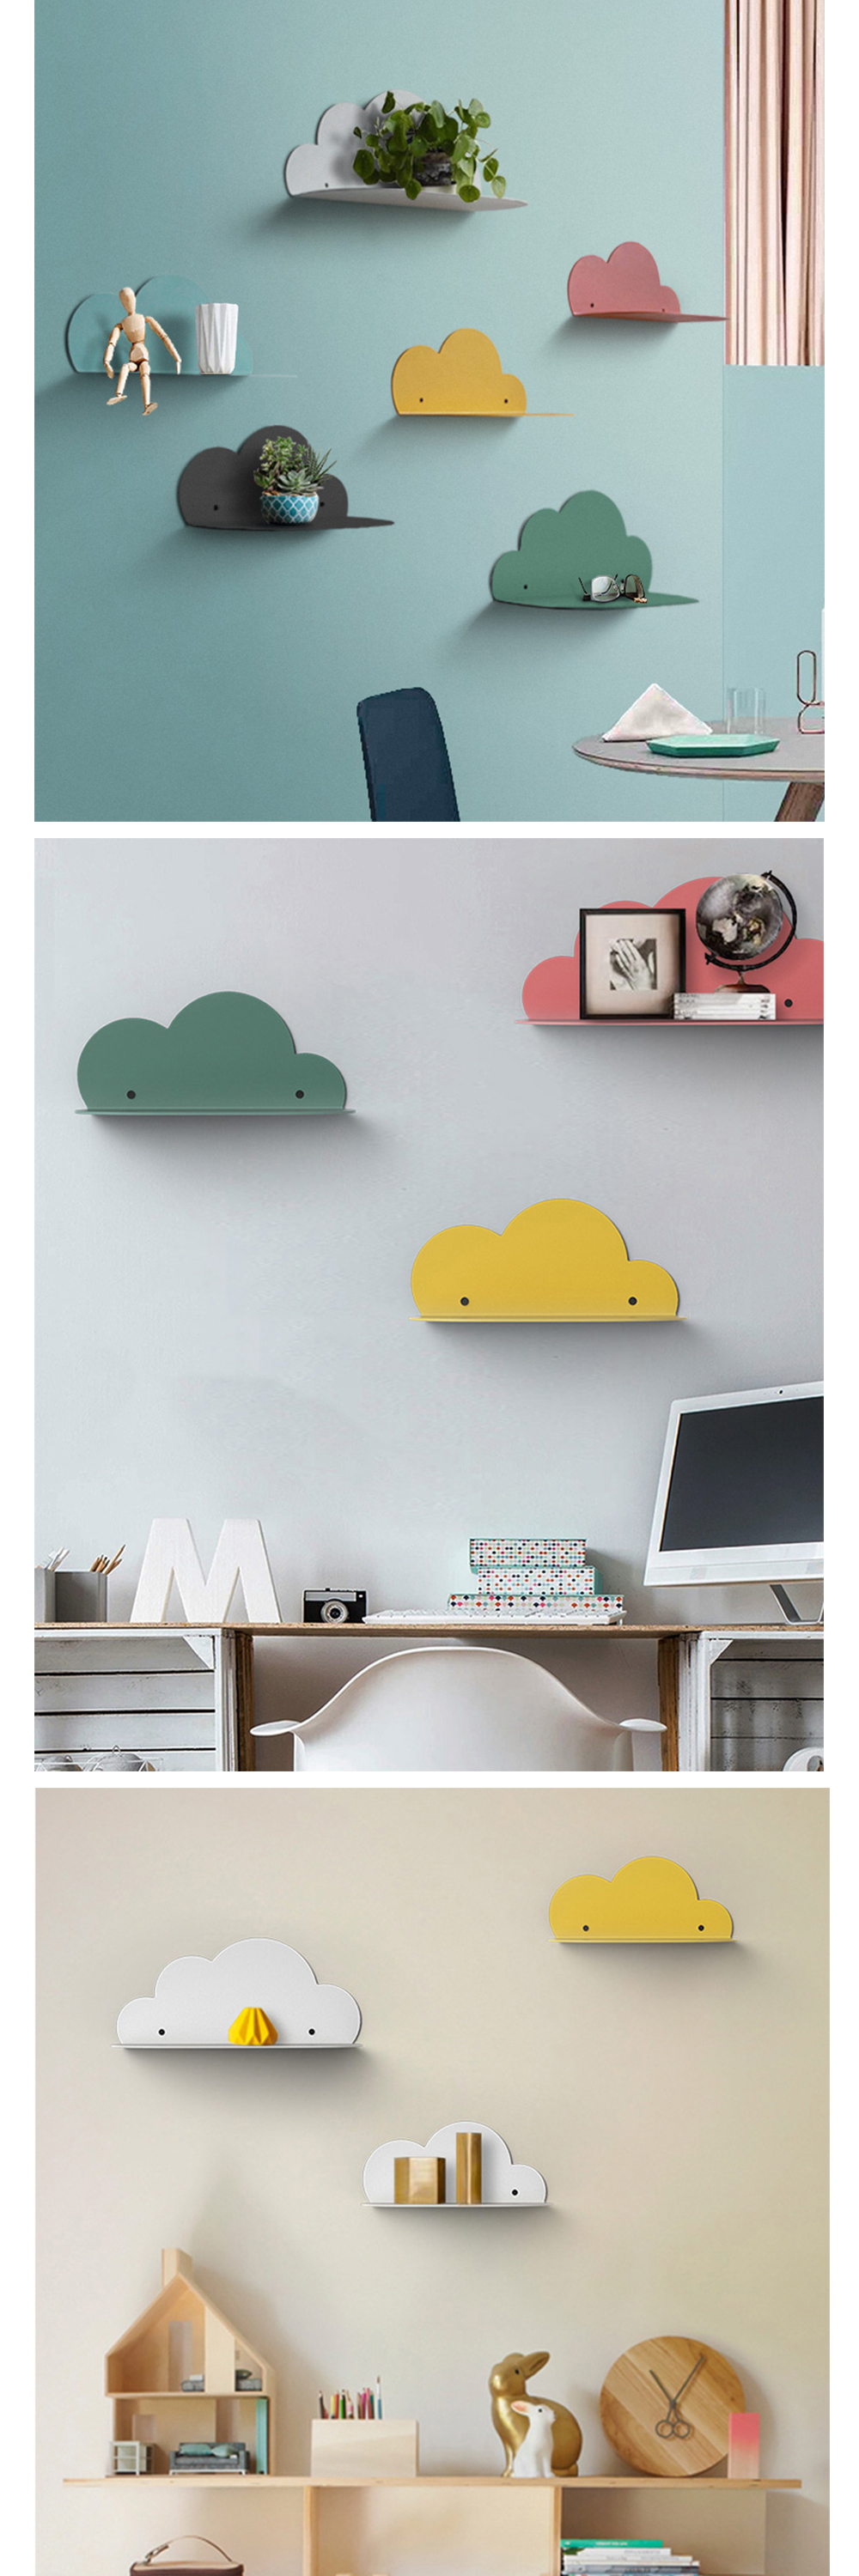 Metal Cloud Shape Wall Shelf Dreamy Home Decoration Wedding Decoration